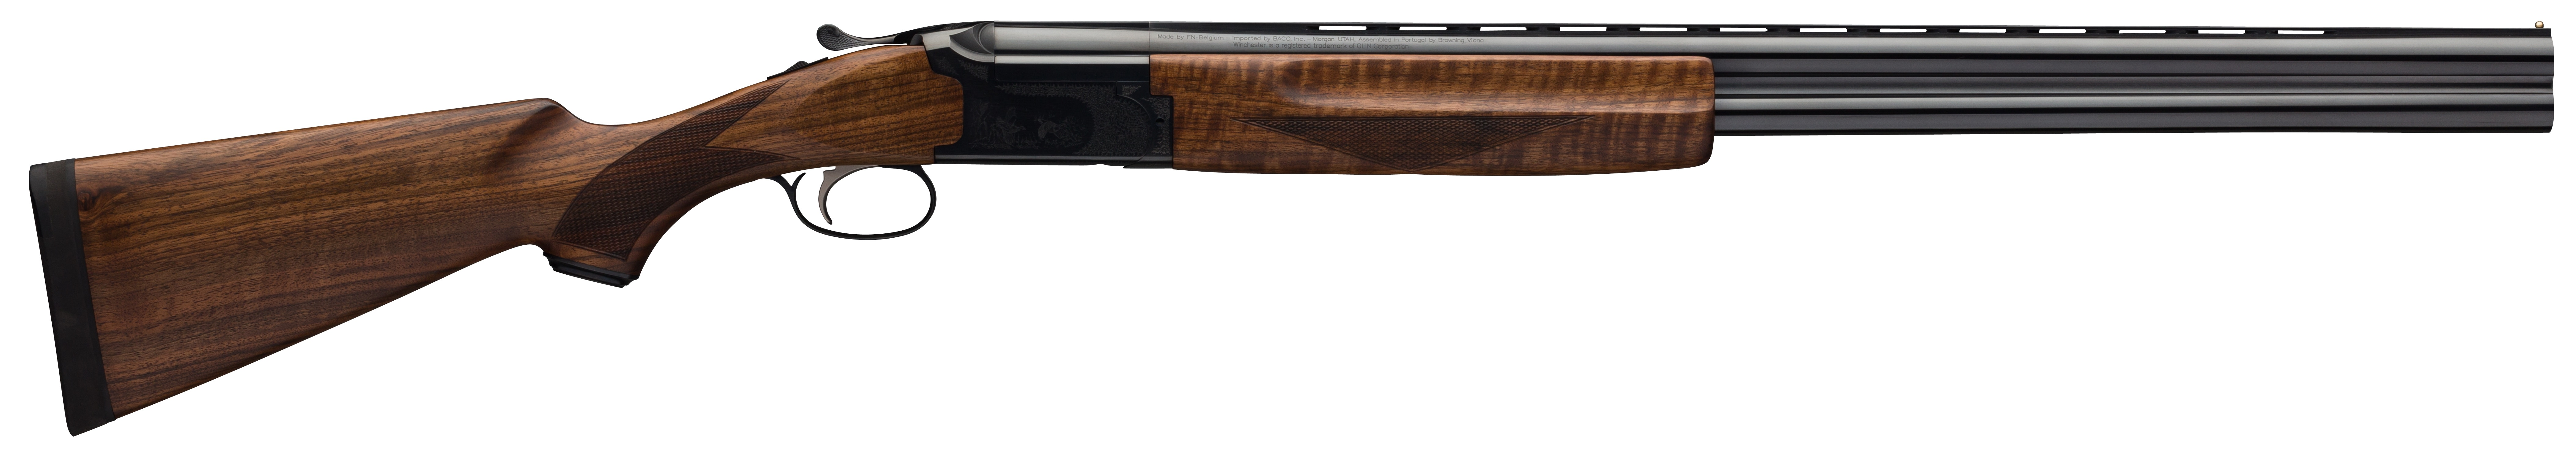 Winchester 101 Deluxe Field Over/Under 3'' 12 Gauge 28'' Blued Aluminum Alloy - Turkish Walnut